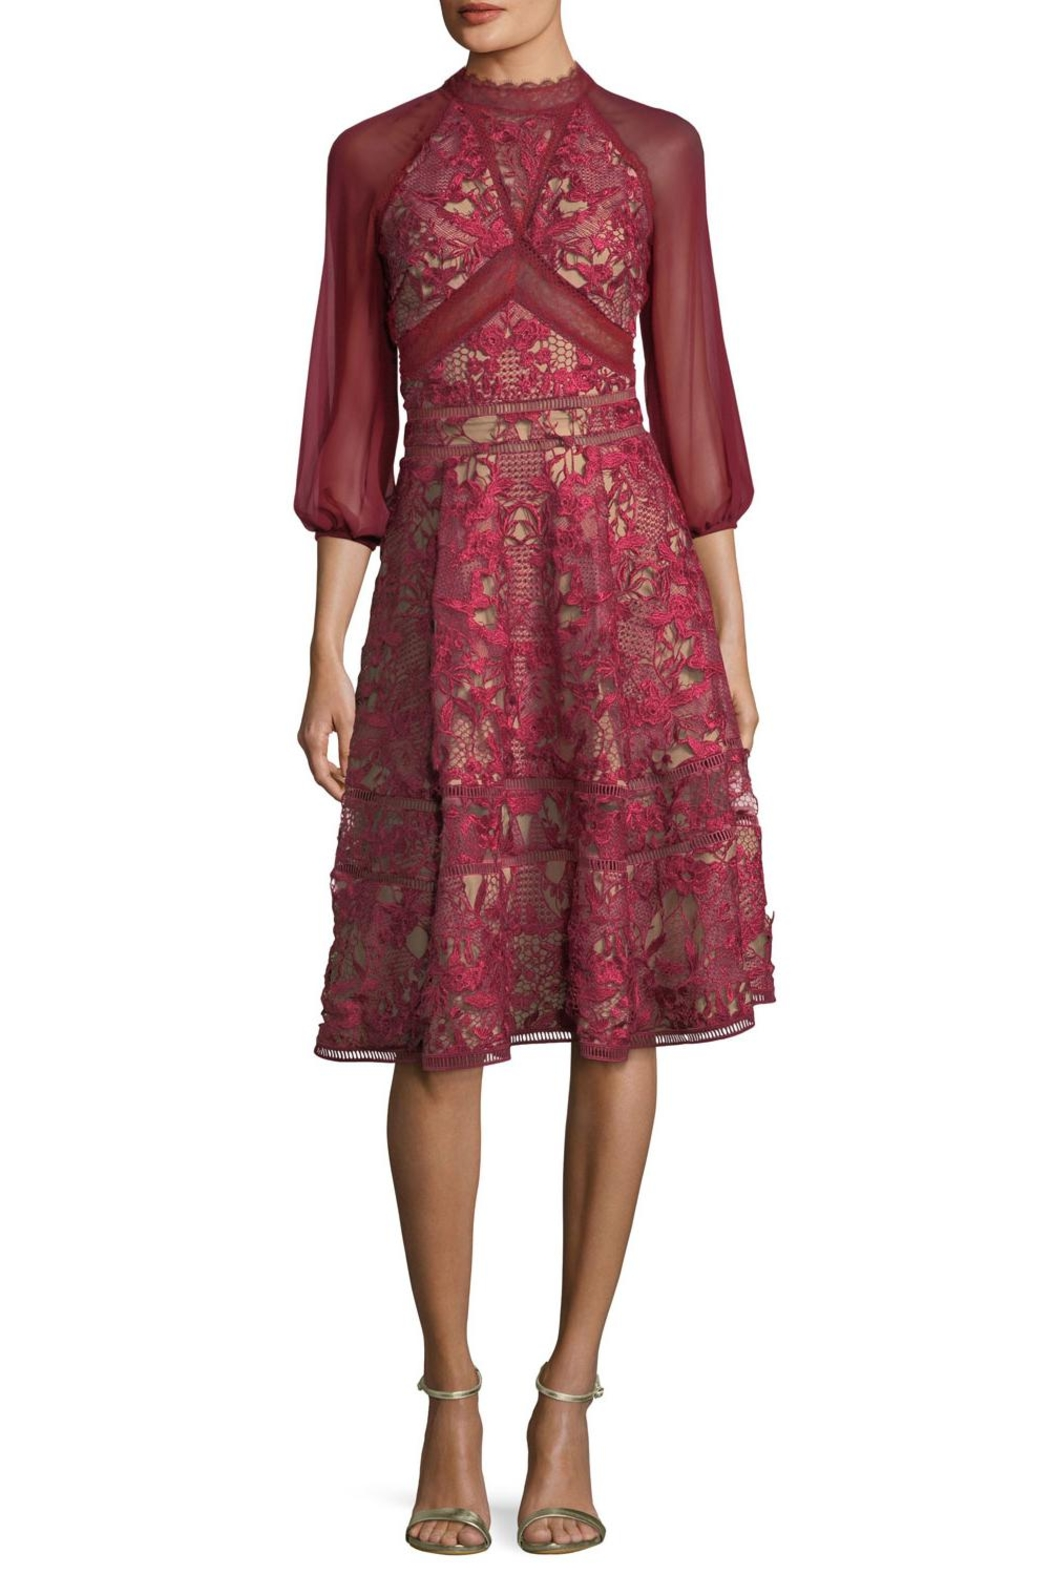 Notte by Marchesa Chiffon Sleeve Dress - Main Image